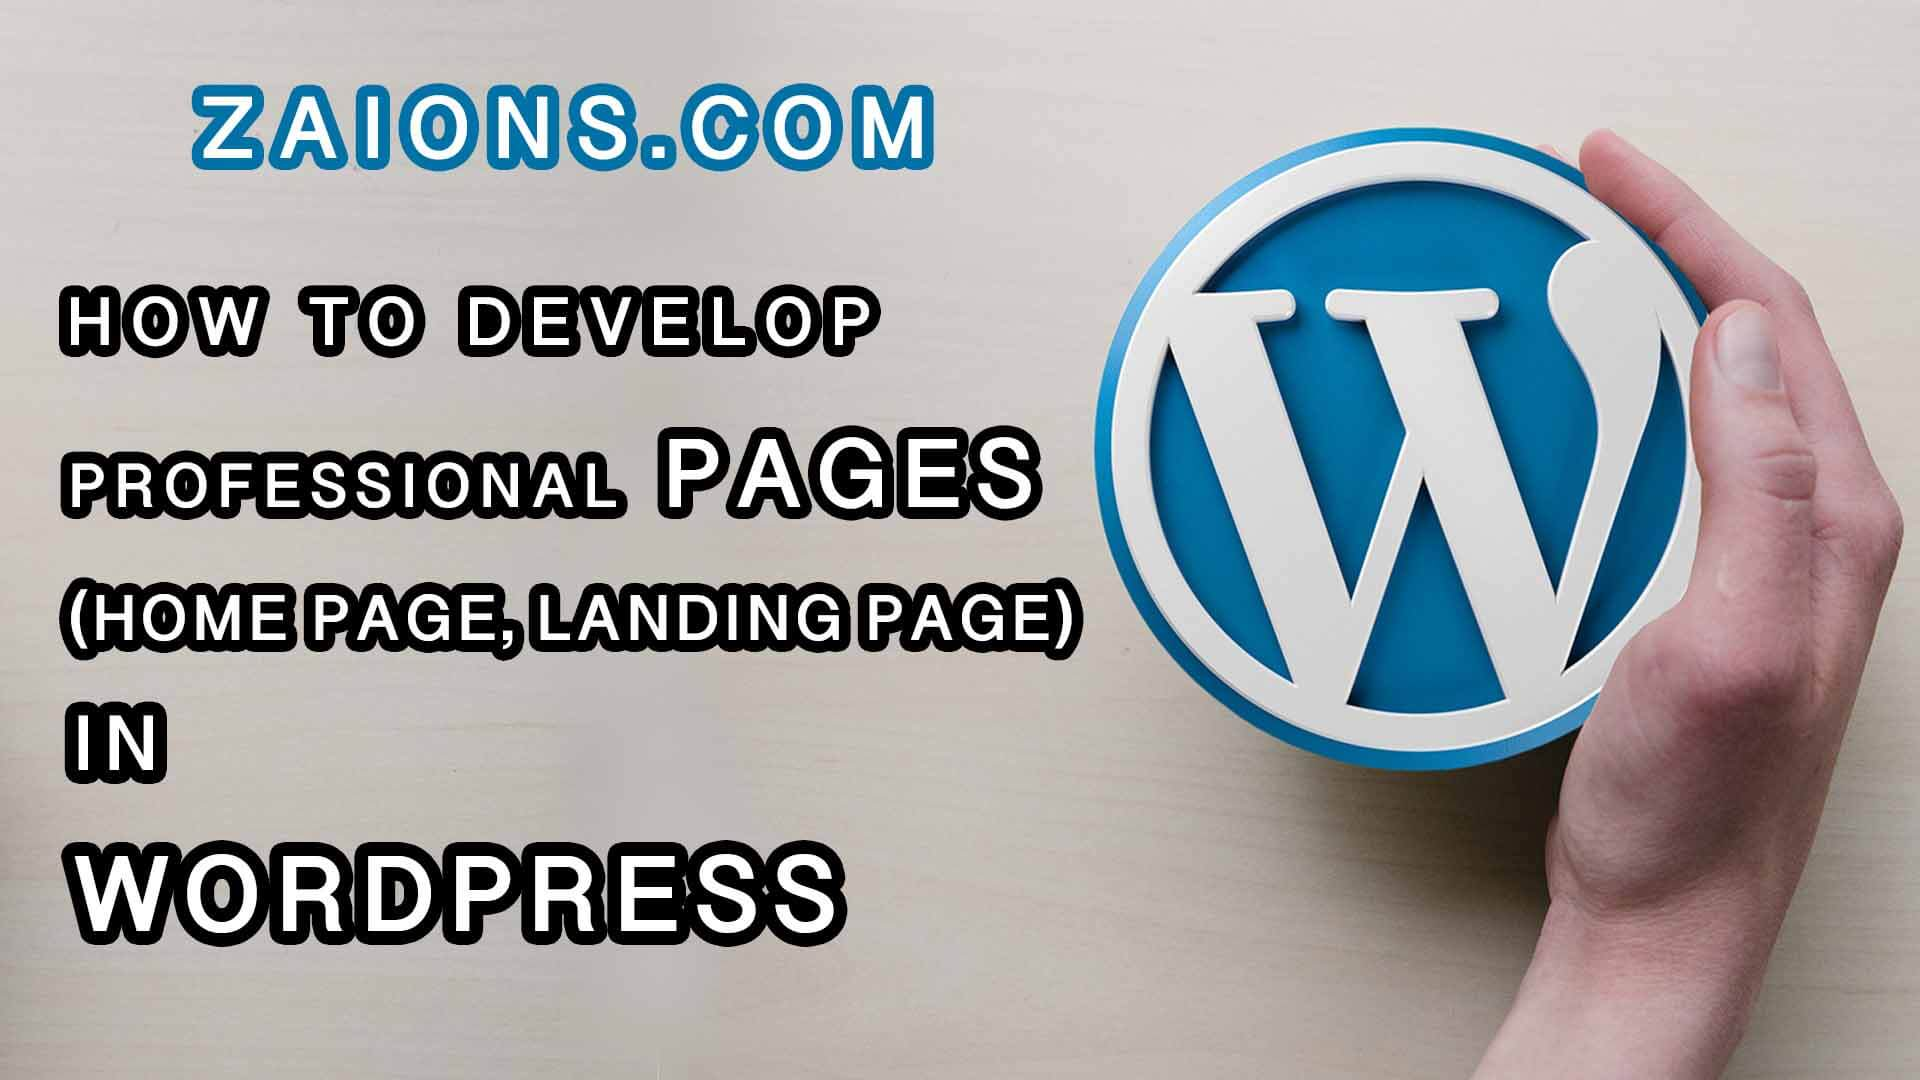 how-to-make-pages-in-wordpress-part-2-zaions.com